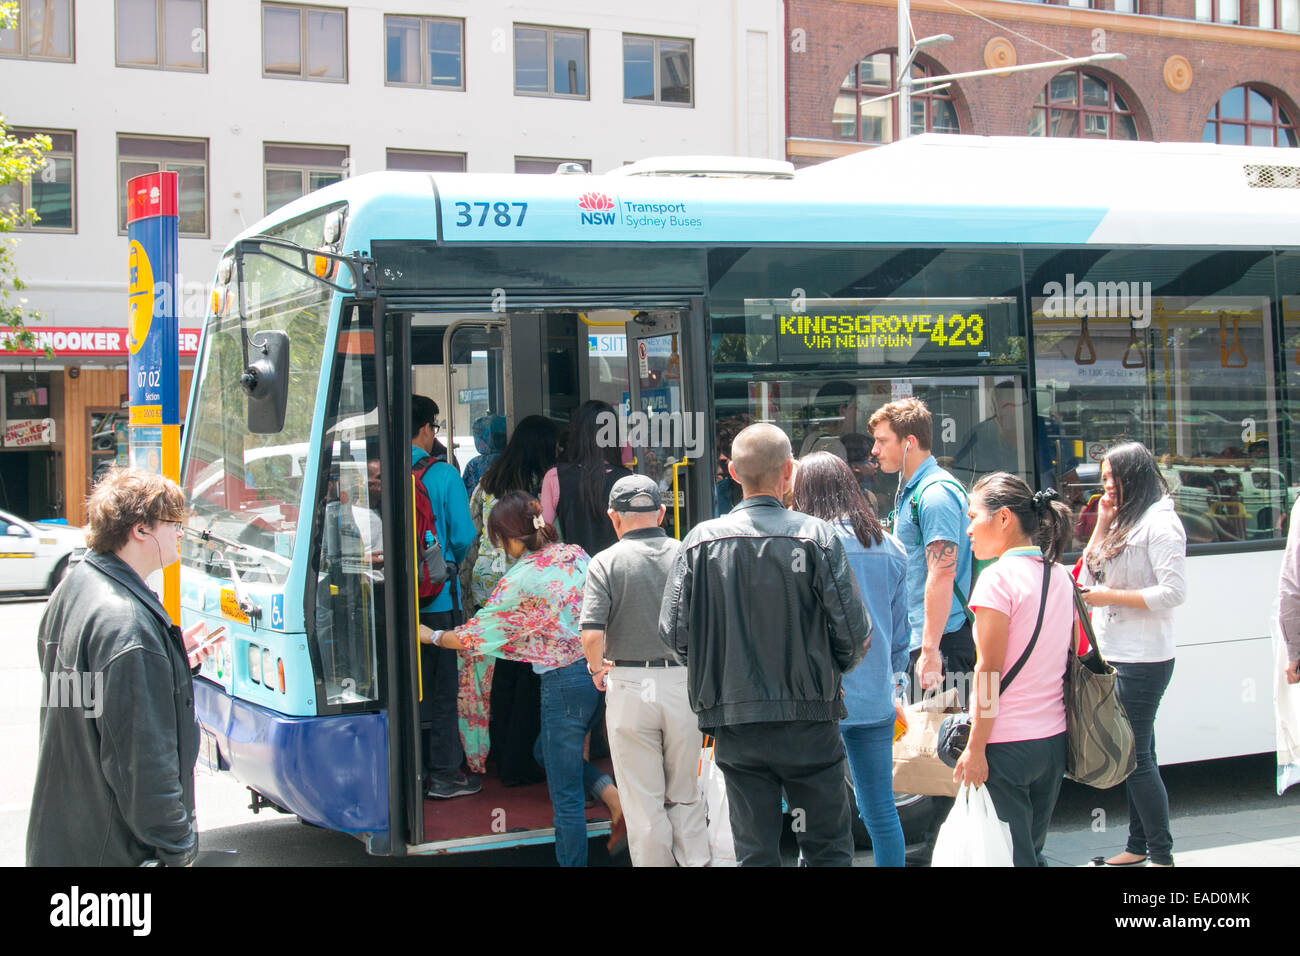 passengers awaiting their bus arrival on broadway,chippendale,sydney,australia - Stock Image